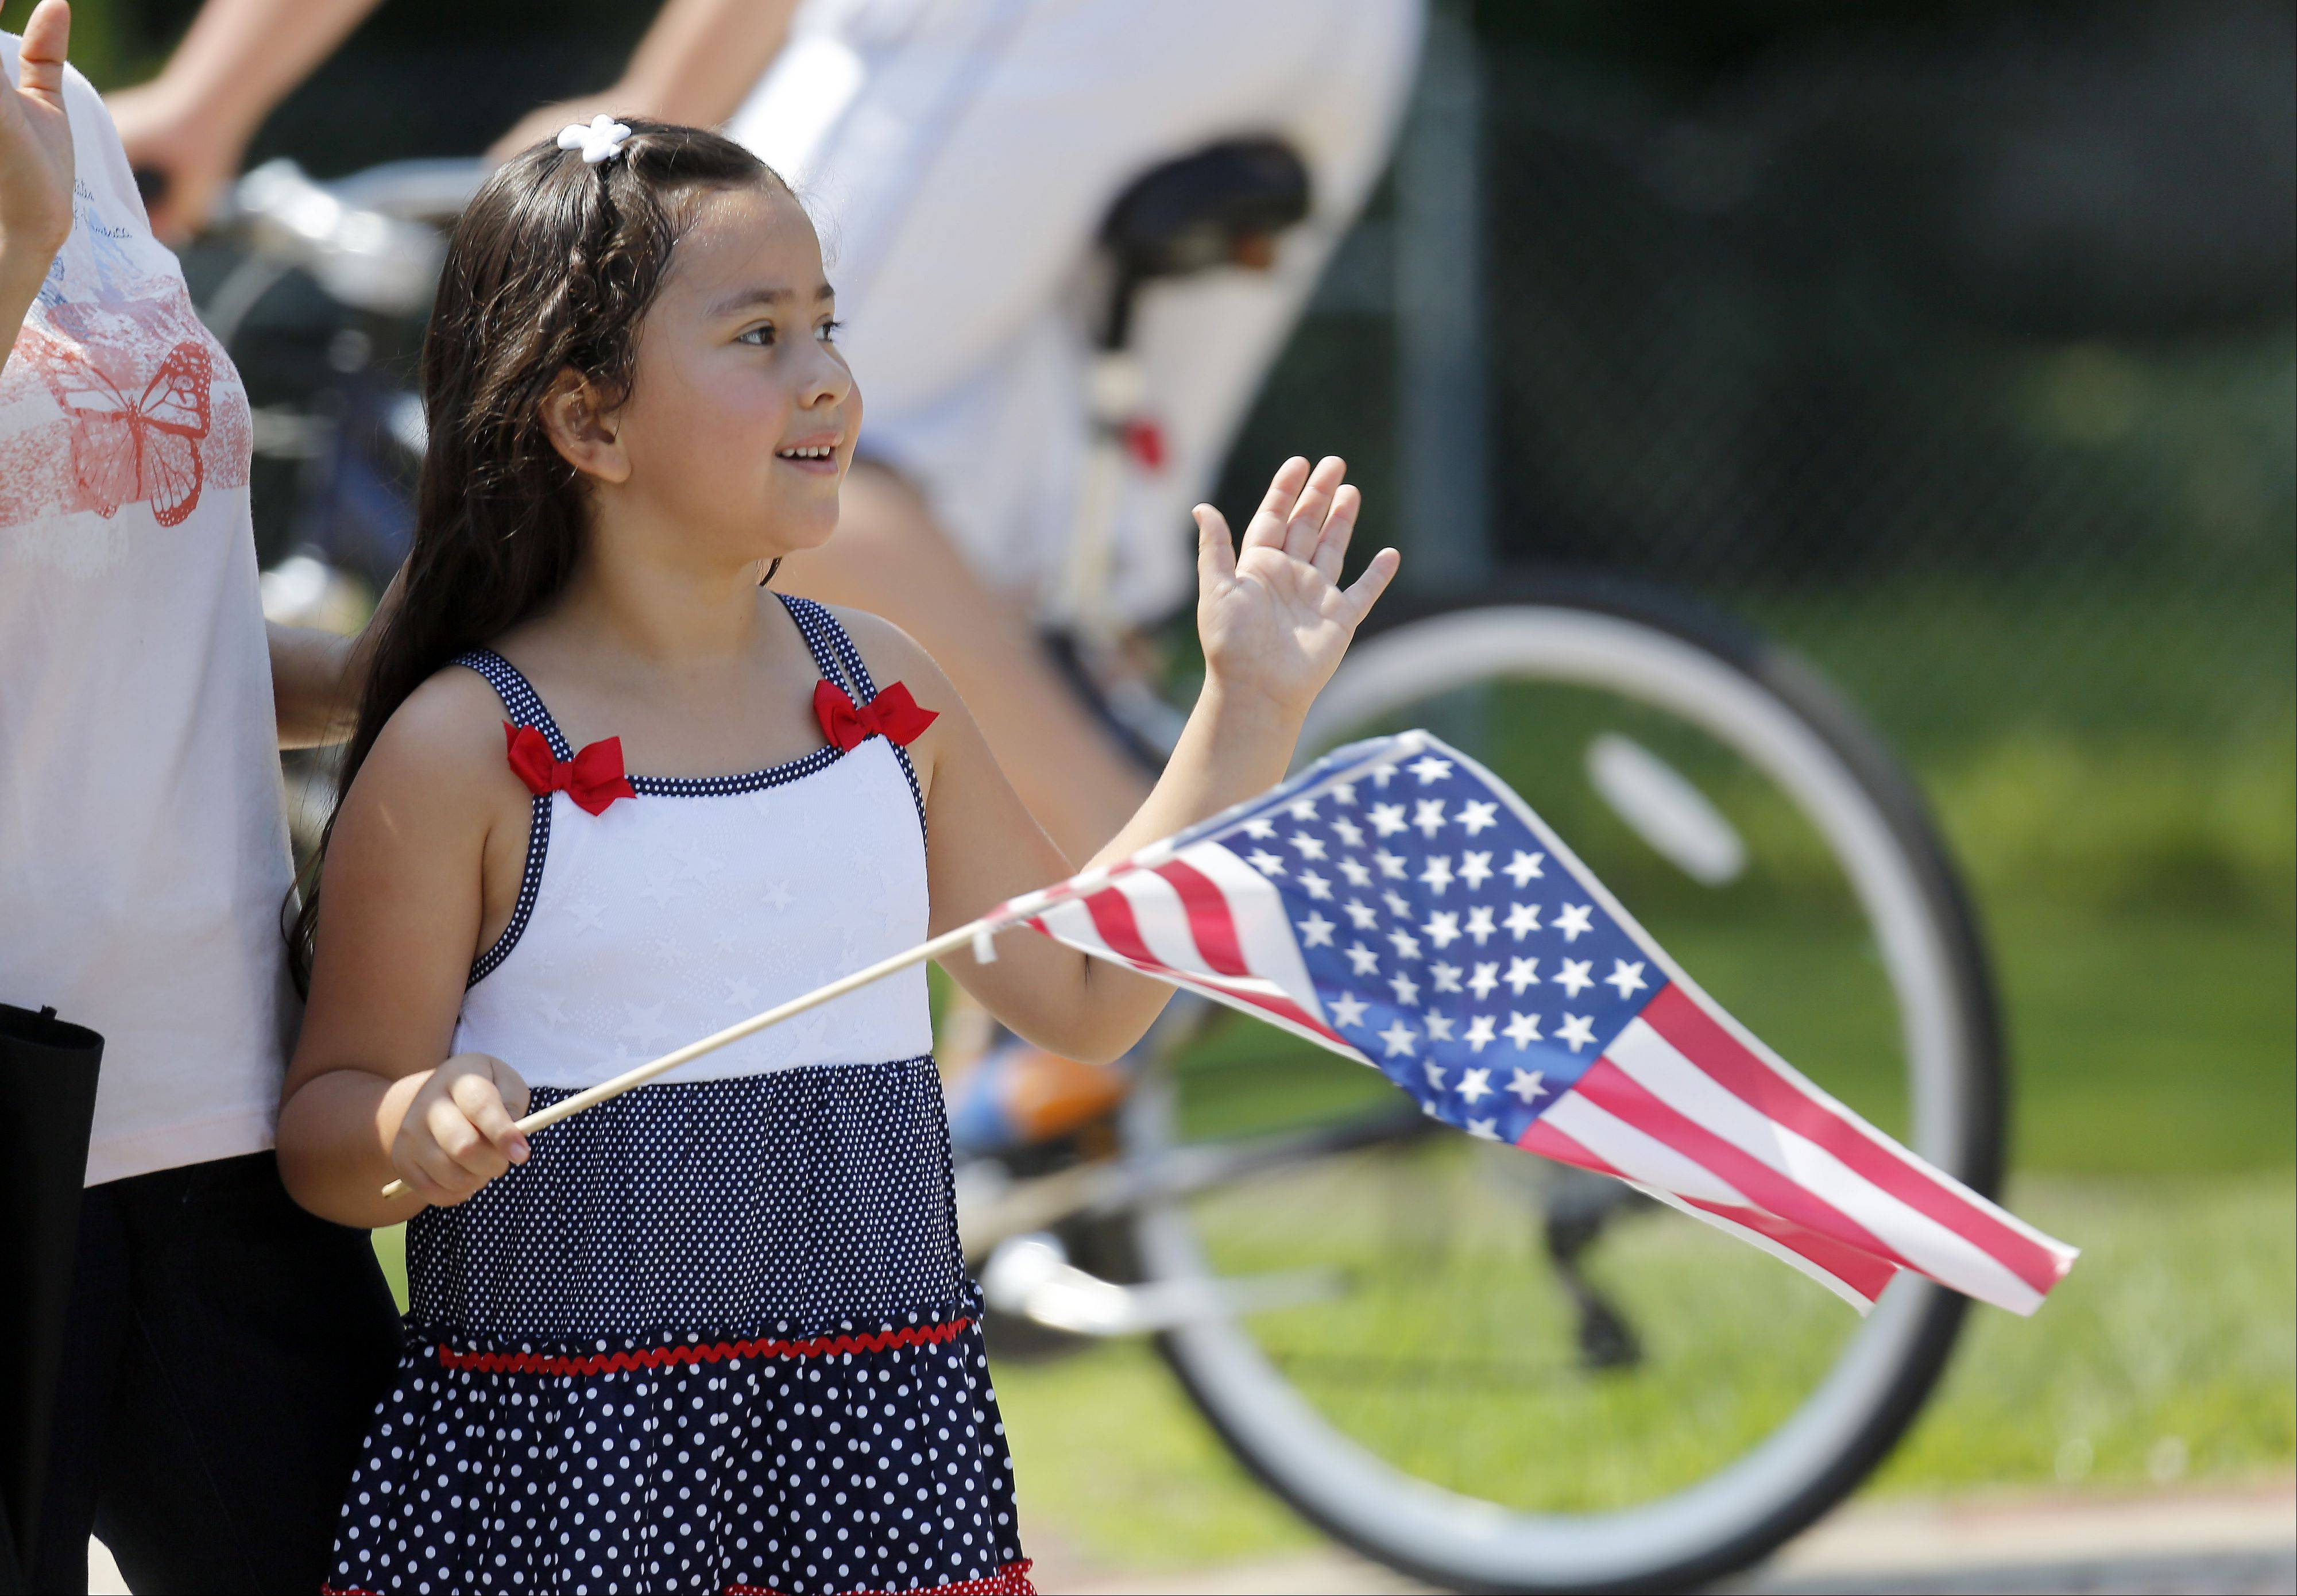 Six-year-old Isabella Diaz of South Elgin waves her flag during the South Elgin Fourth of July Parade Thursday.